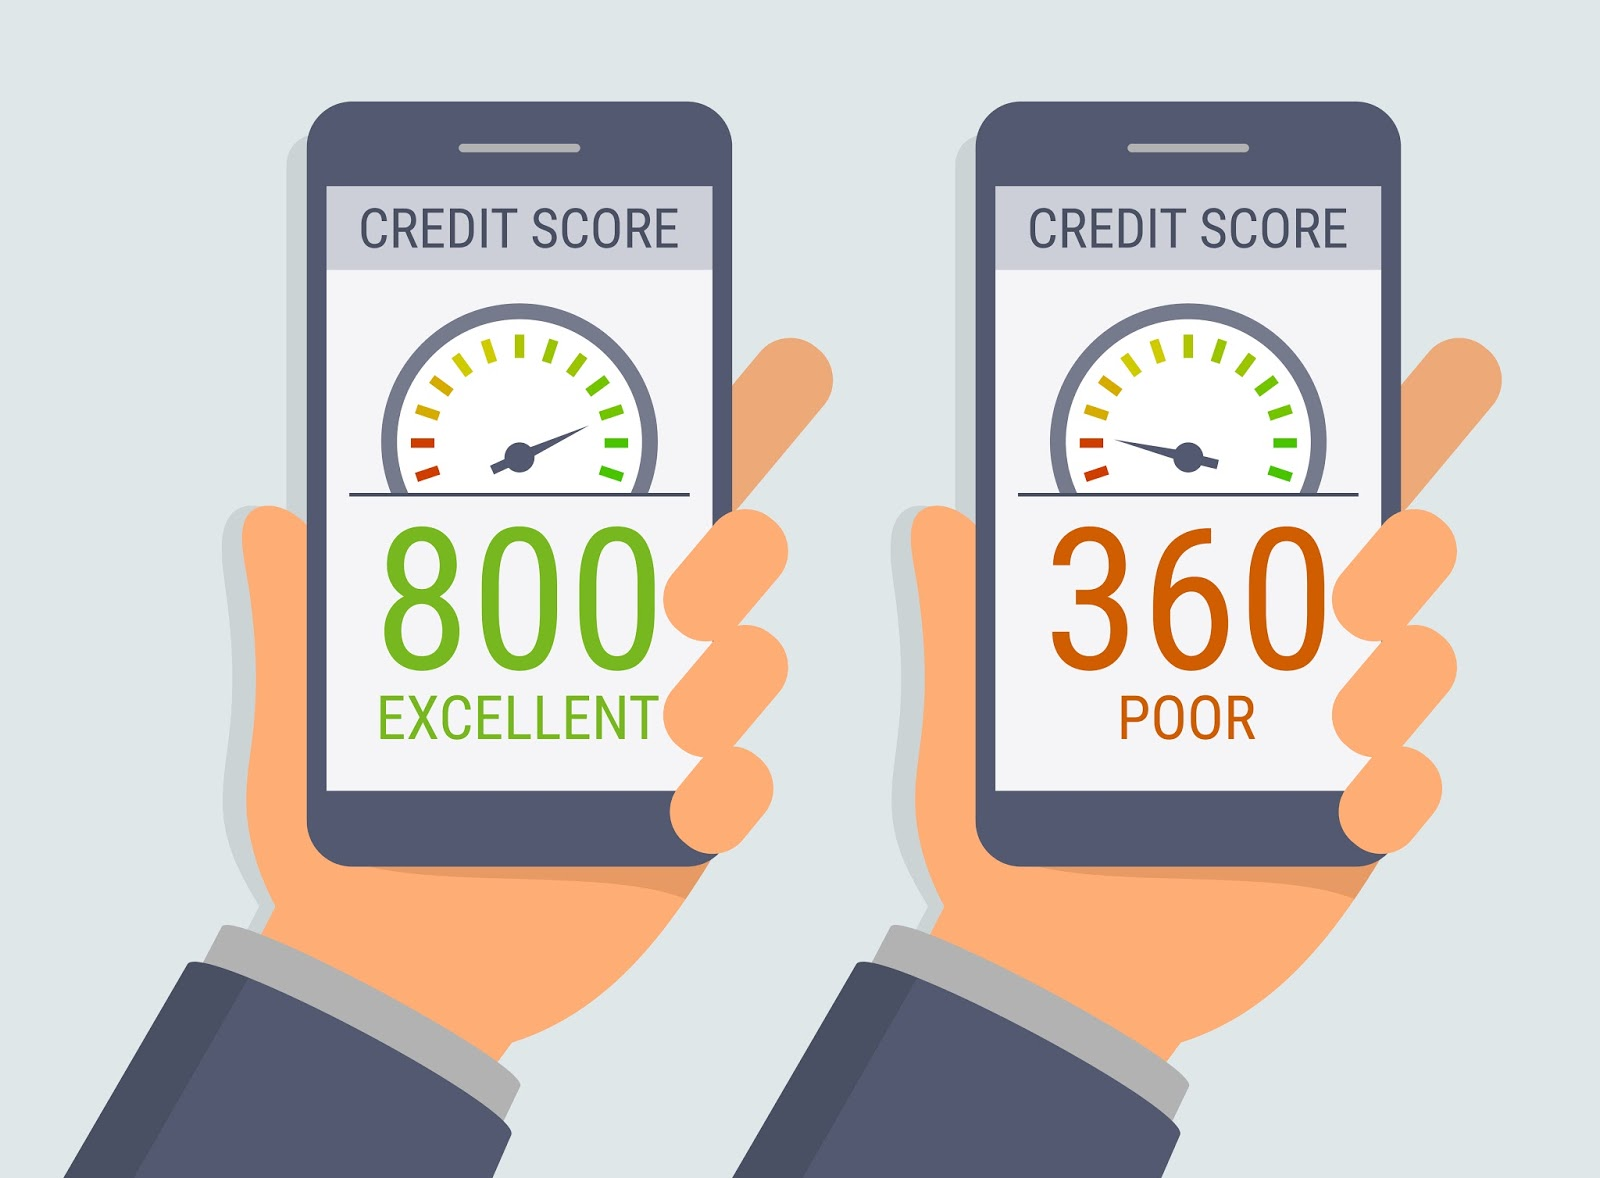 Credit Score Range Meaning And Impact